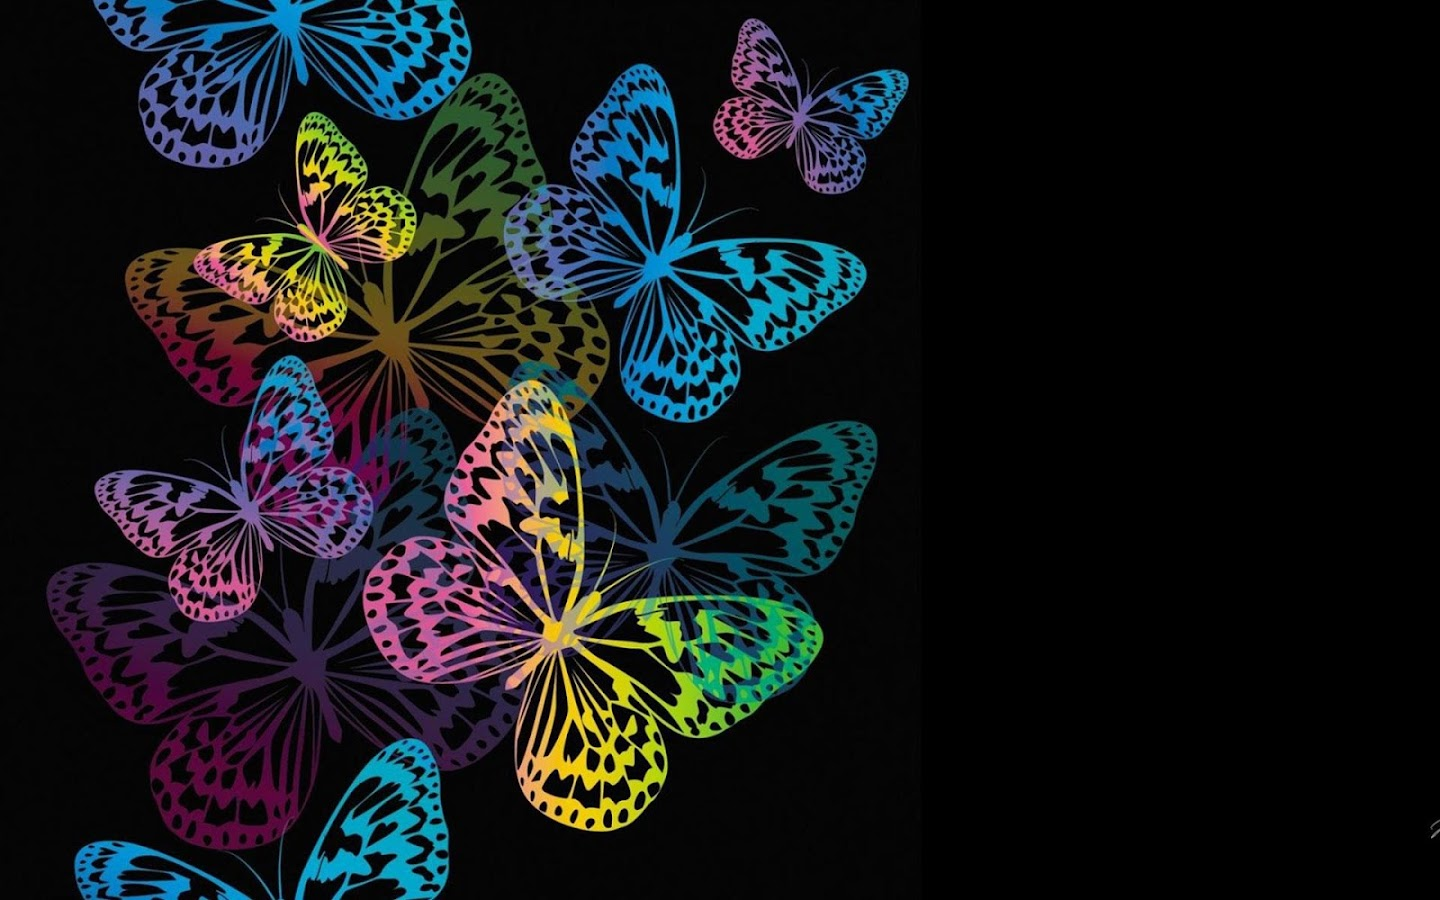 Butterfly Live Wallpaper Animated Butterflies Android Apps on